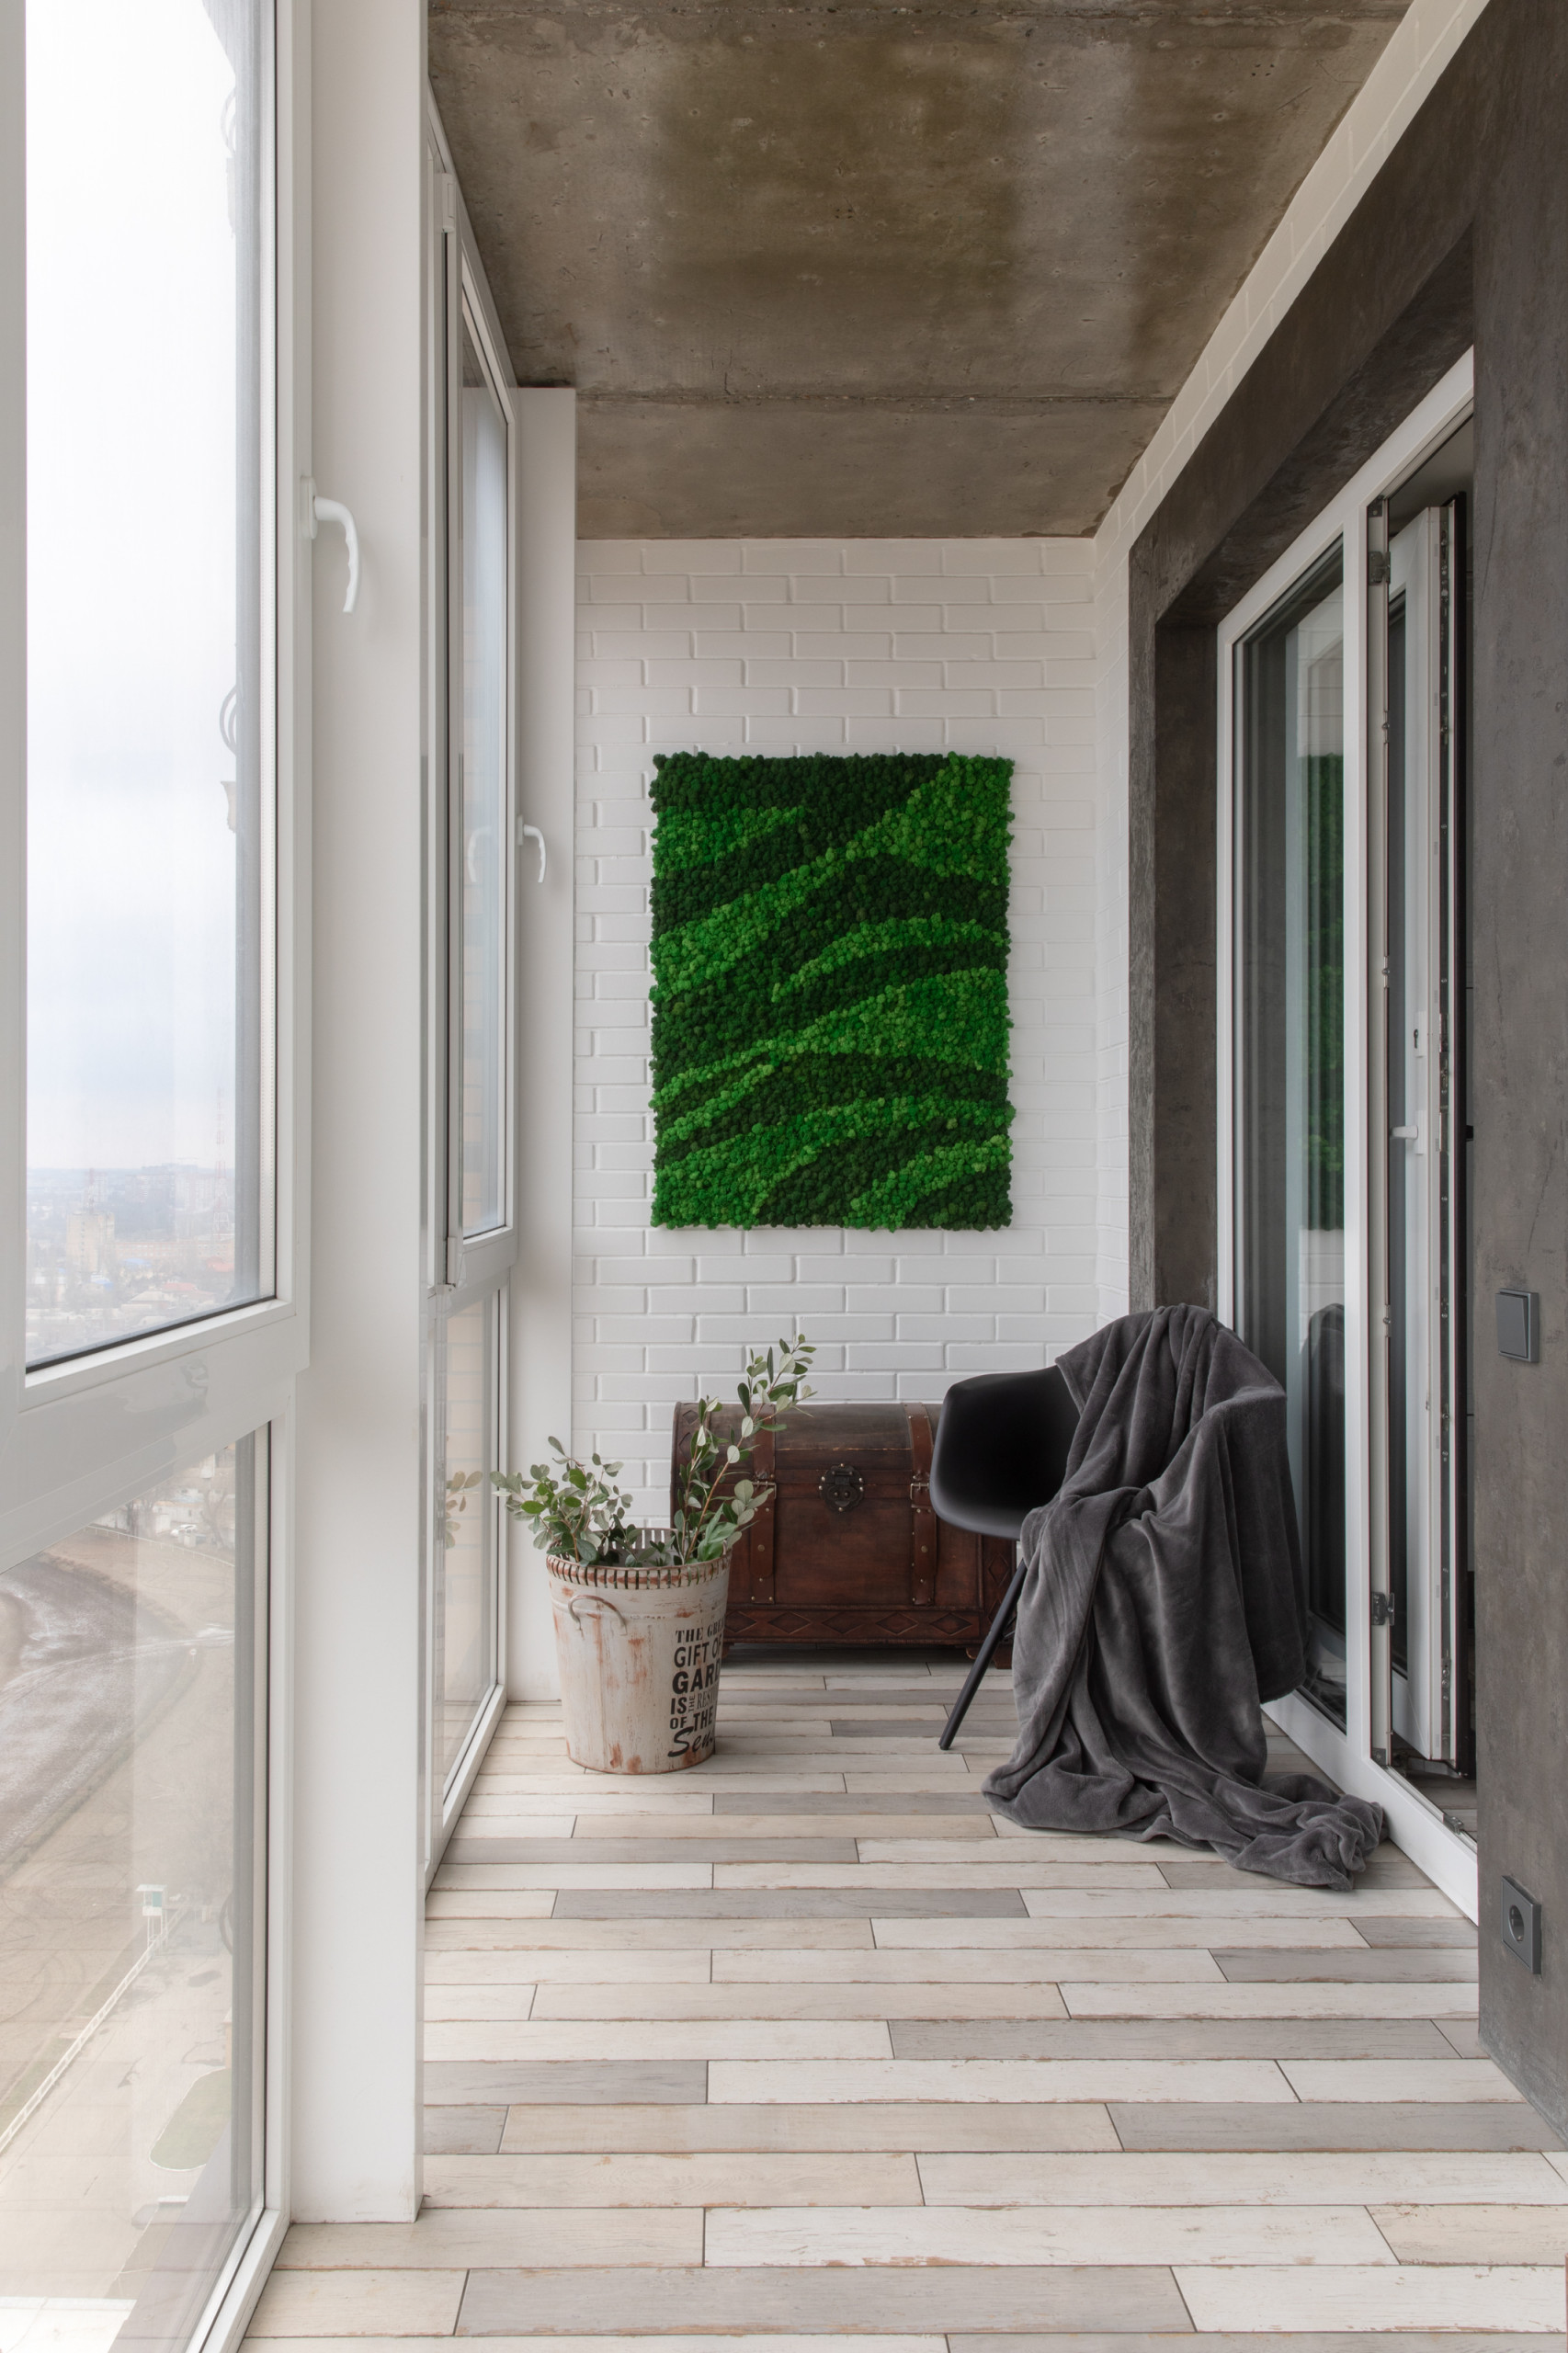 75 Beautiful Vertical Balcony Garden With No Cover Pictures Ideas January 2021 Houzz